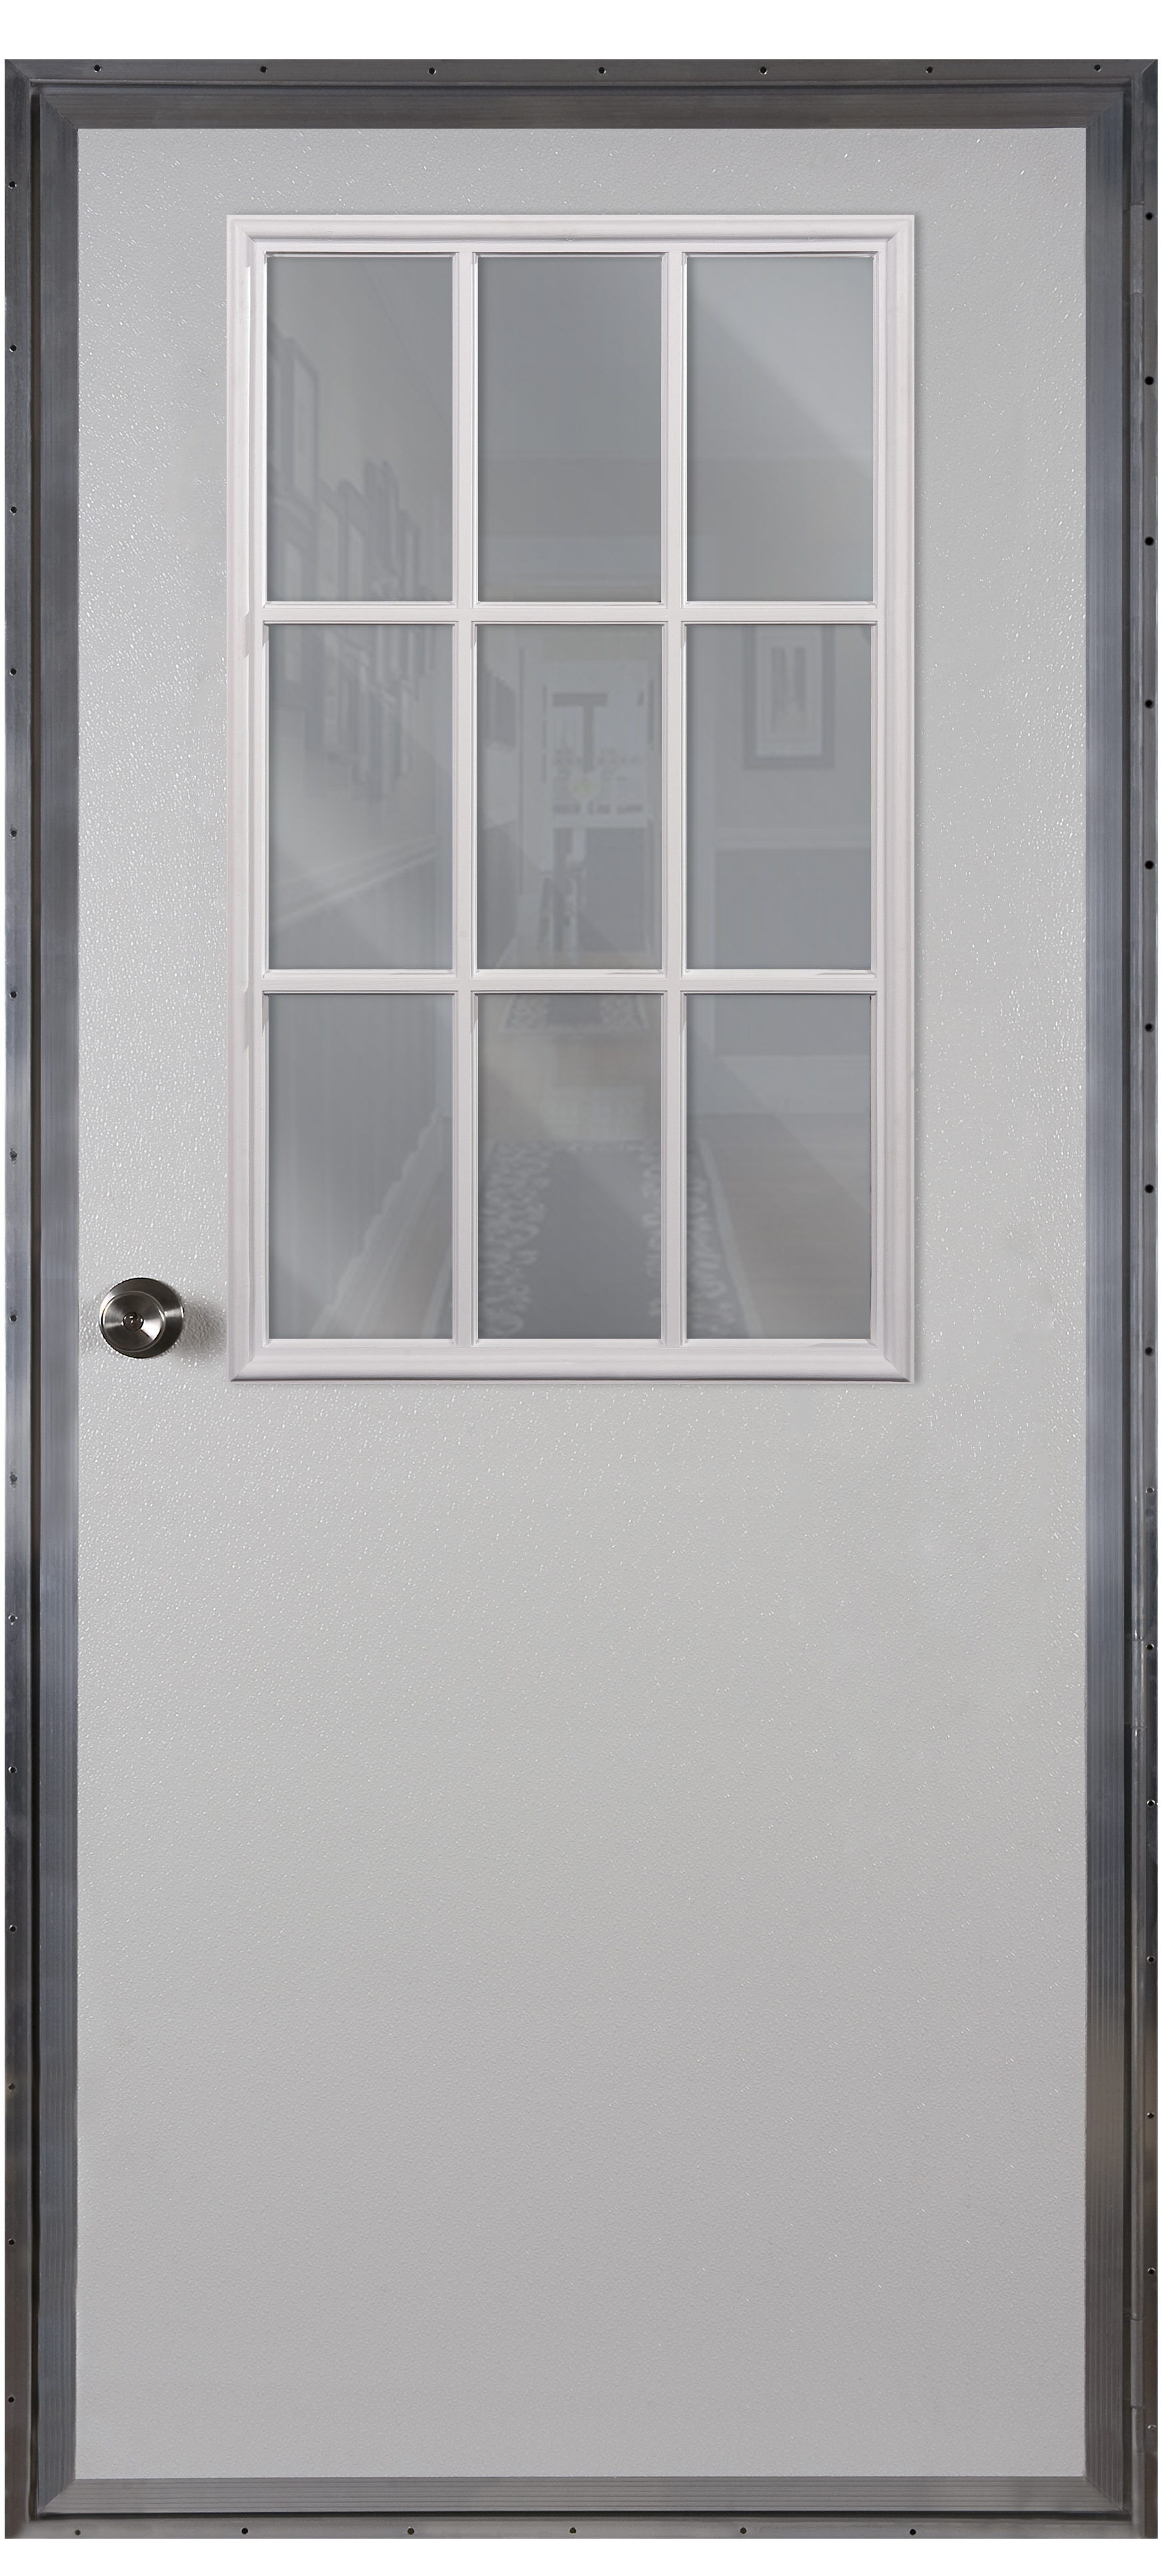 9 lite outswing entry door bargain outlet product doors for 9 light exterior door